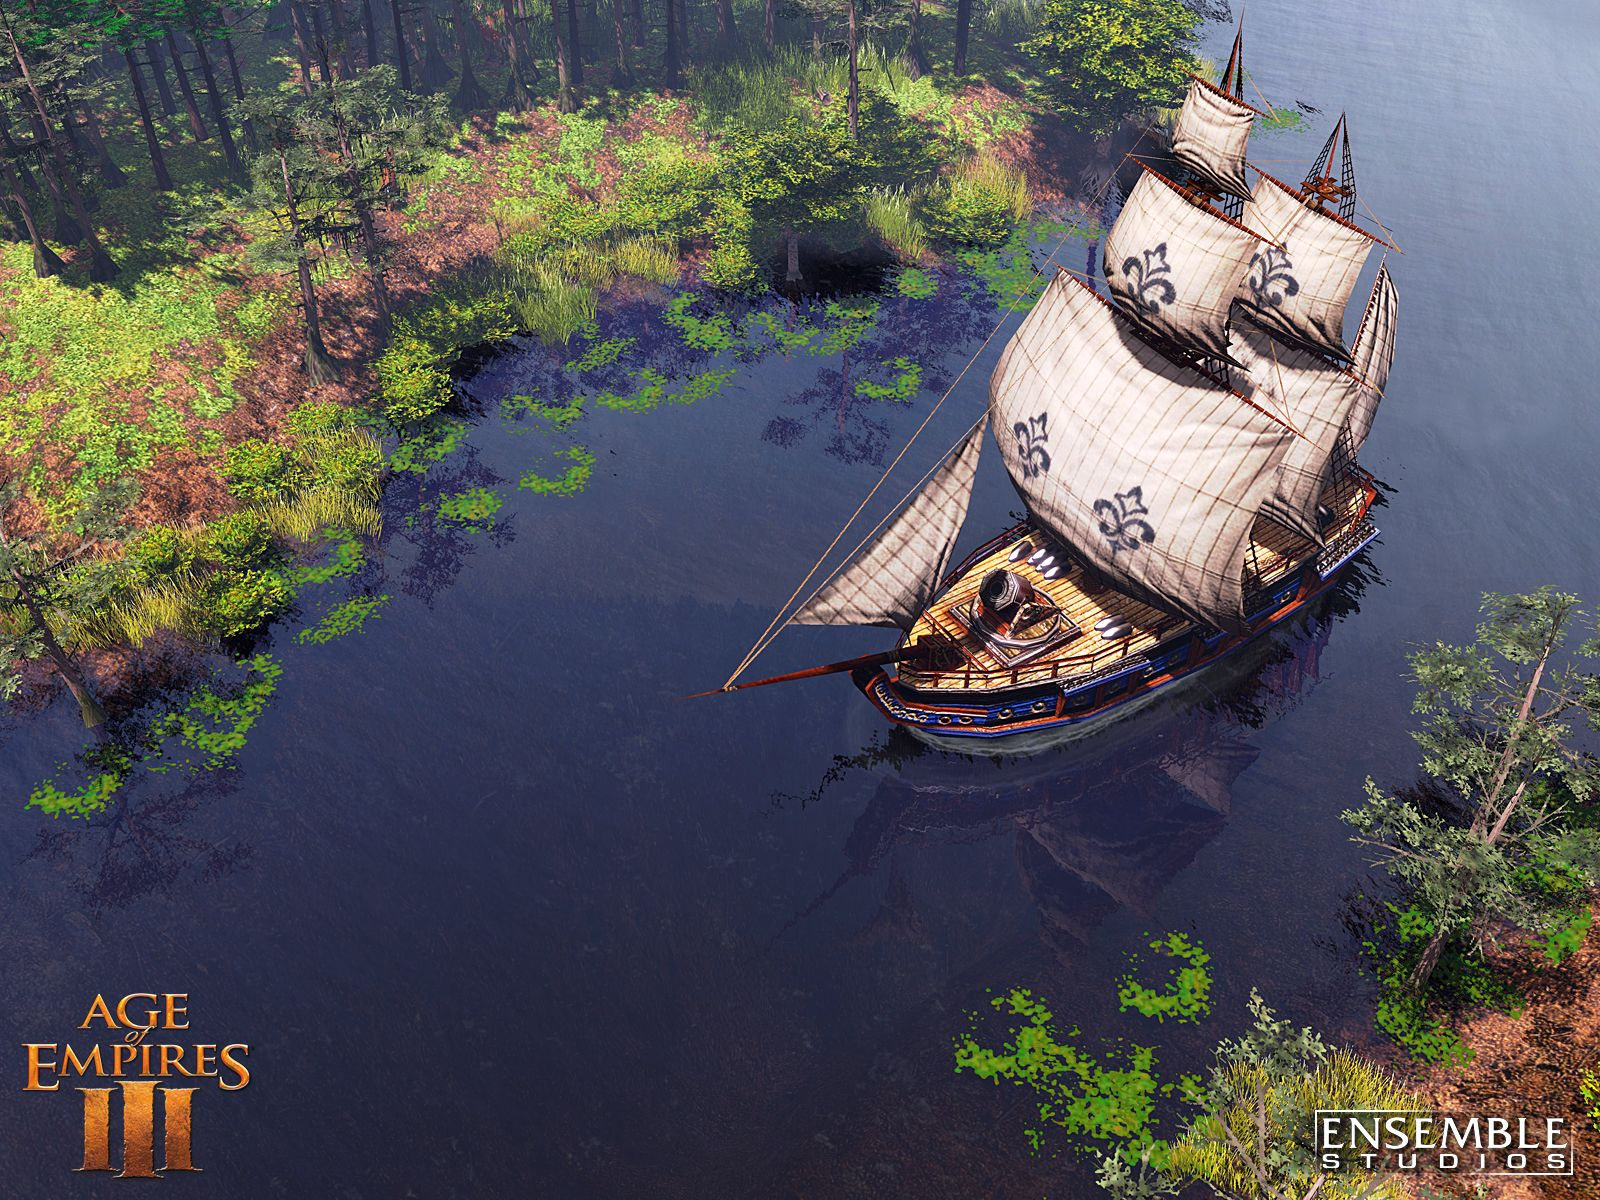 Age Of Empires Iii Aoeiii Age Of Empires Iii Age Of Empire Game